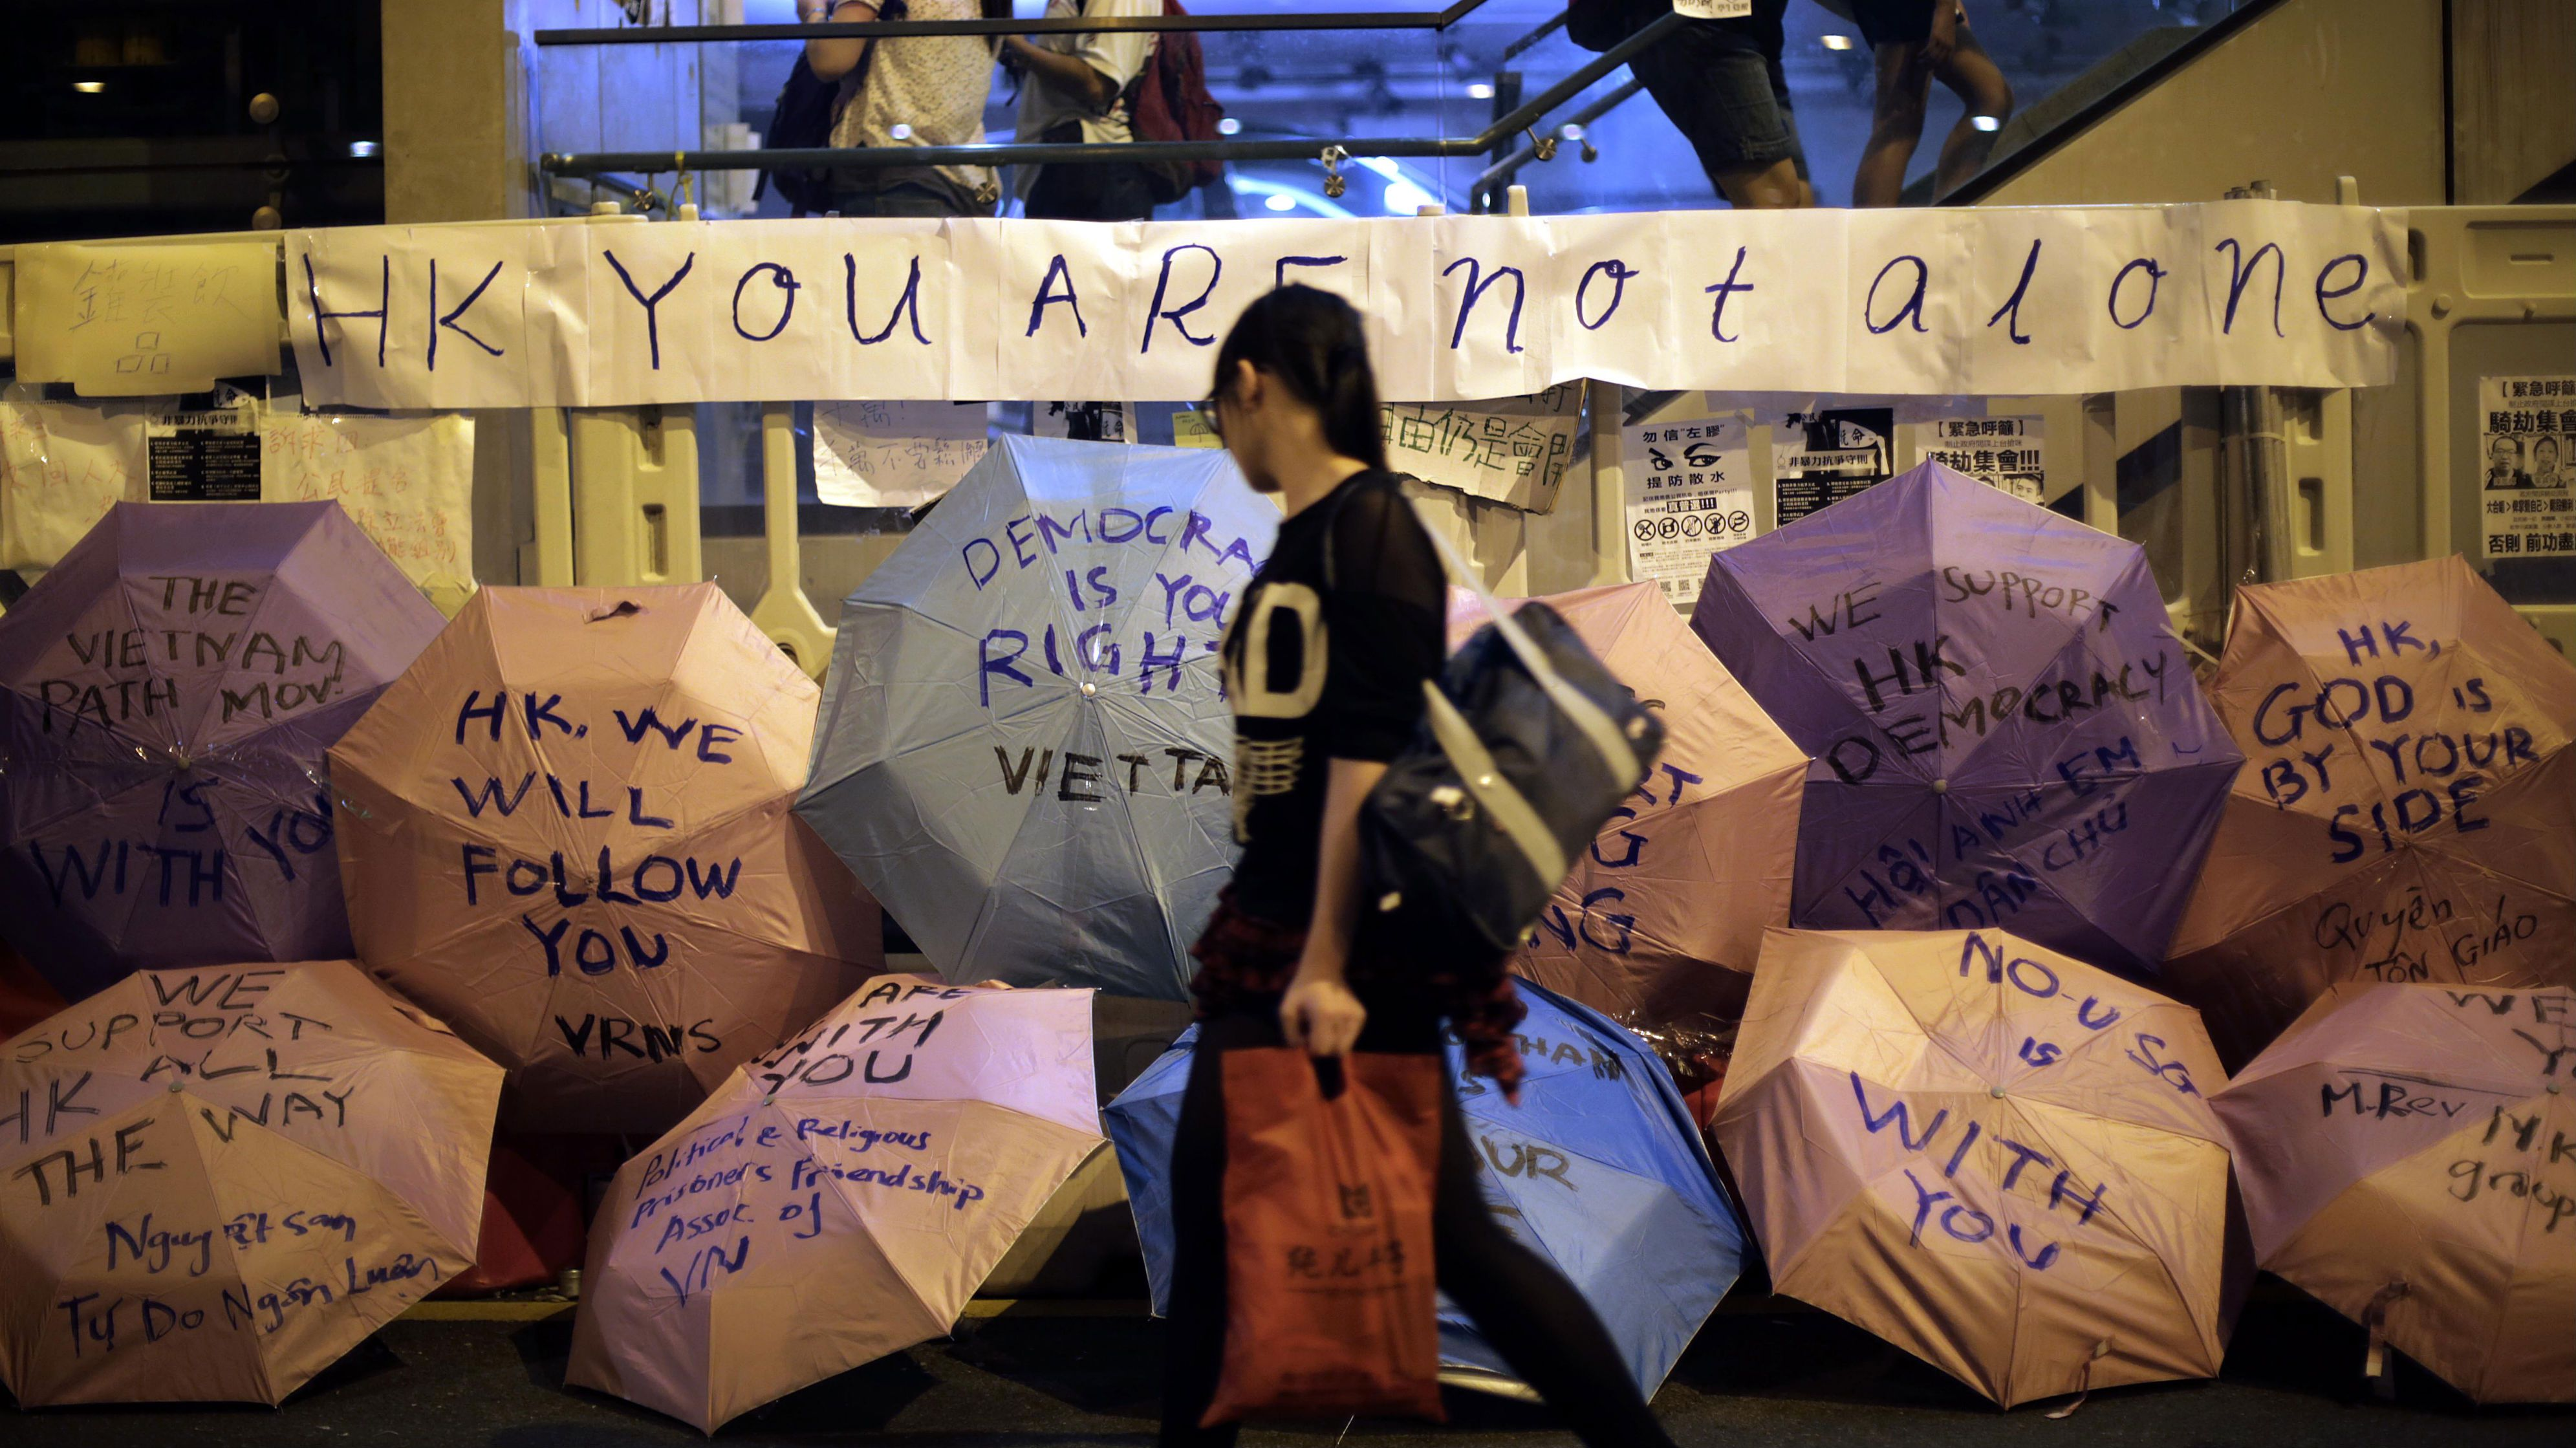 A student protester walks past umbrellas with words of support written on them at the pro-democracy protest site near government headquarters, Saturday, Oct. 4, 2014 in Hong Kong. Early Saturday, the Hong Kong Federation of Students, one of the groups leading the demonstrations that drew tens of thousands of people earlier this week, said they saw no choice but to cancel the dialogue they had agreed to after Hong Kong's Chief Executive Leung Chun-ying's proposed talks. They demanded the government hold someone responsible for the scuffles Friday, the worst disturbances since police used tear gas and pepper spray to try to disperse the protesters the weekend before. (AP Photo/Wong Maye-E)